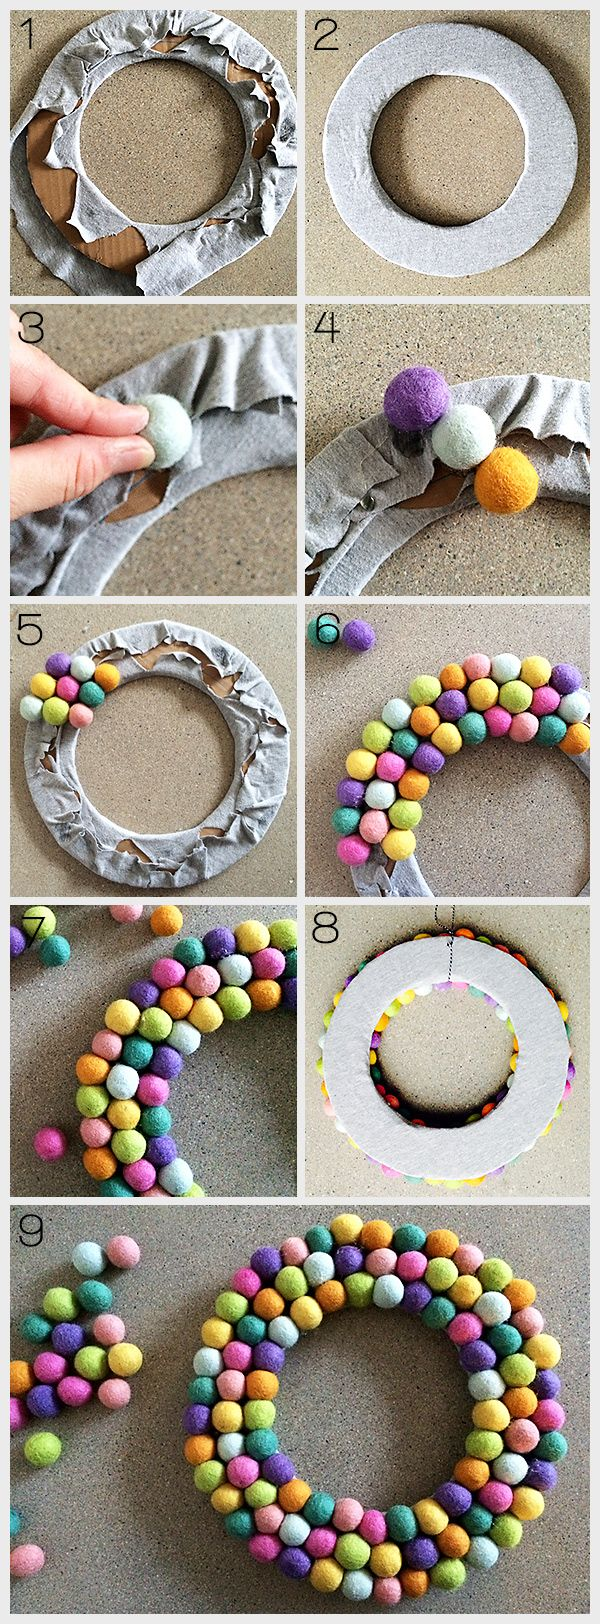 Check out this easy to make, whimsical DIY felt ball wreath!